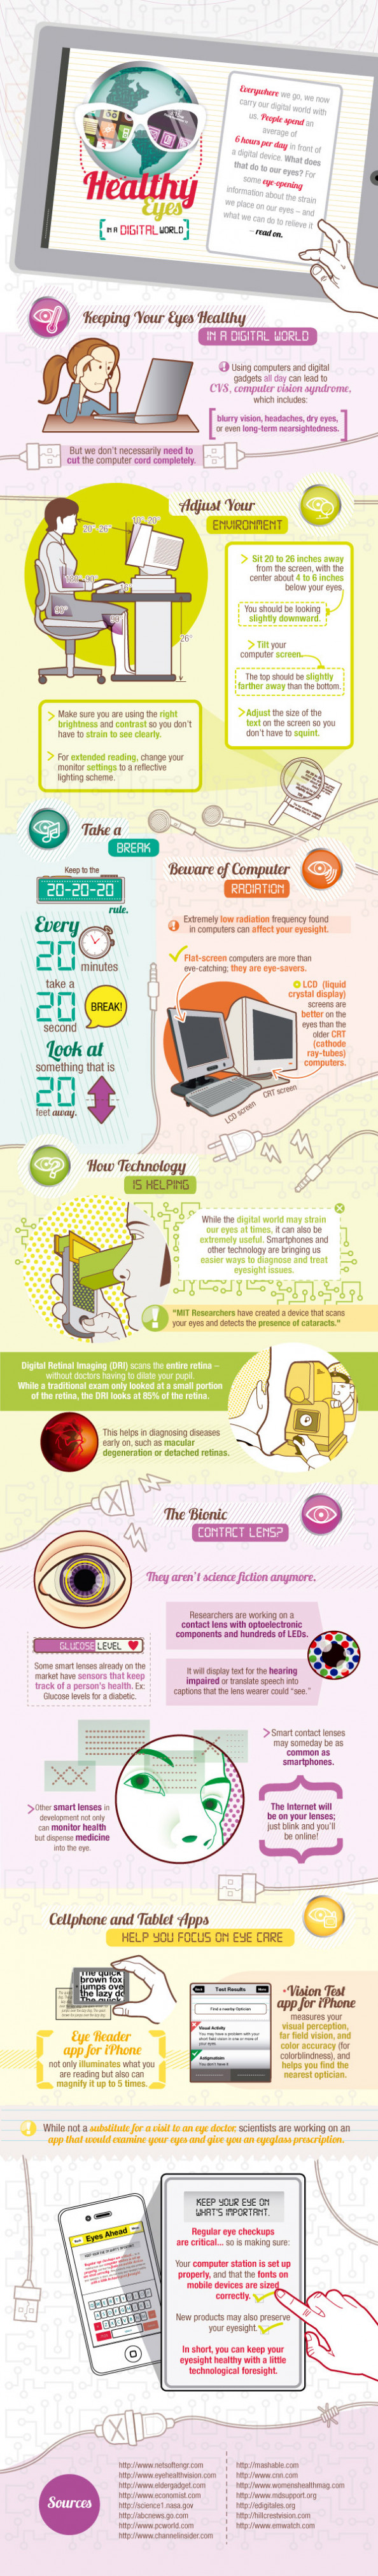 Healthy Eyes on the Digital World  Infographic